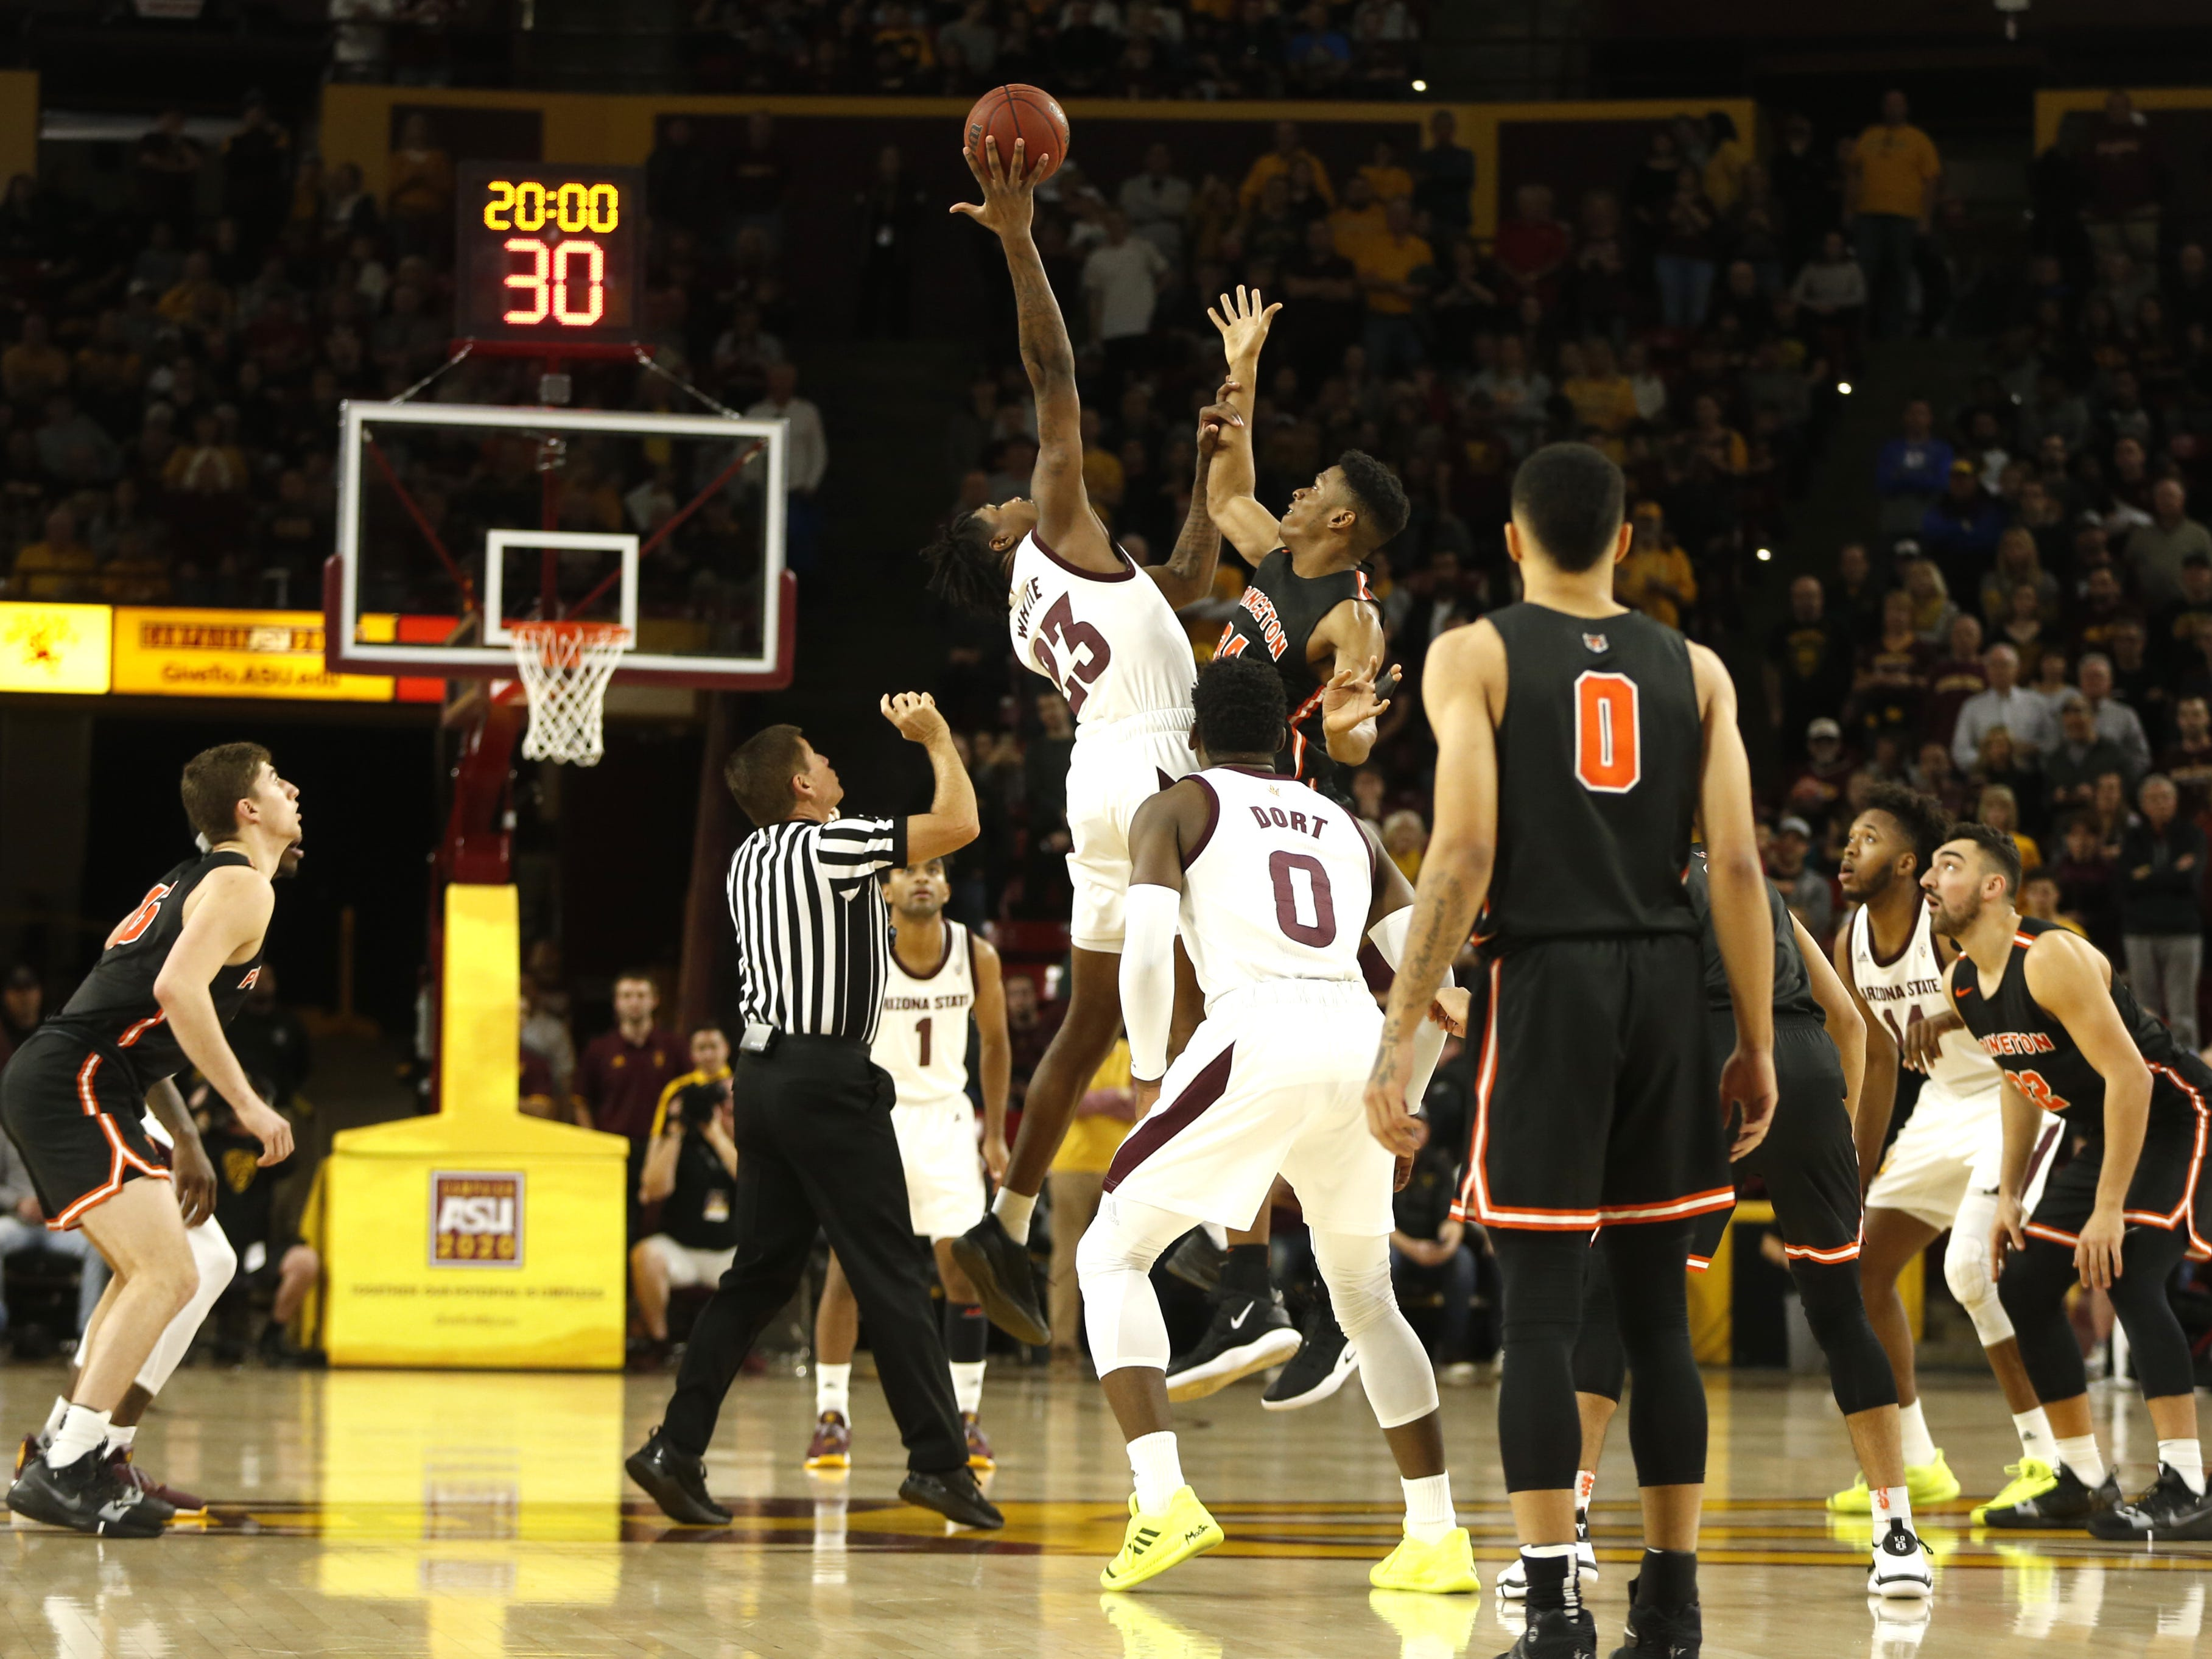 ASU's Romeo White (23) wins the tip-off against Princeton's Richmond Aririguzoh (34) during the first half at Wells Fargo Arena in Tempe, Ariz. on December 29, 2018.